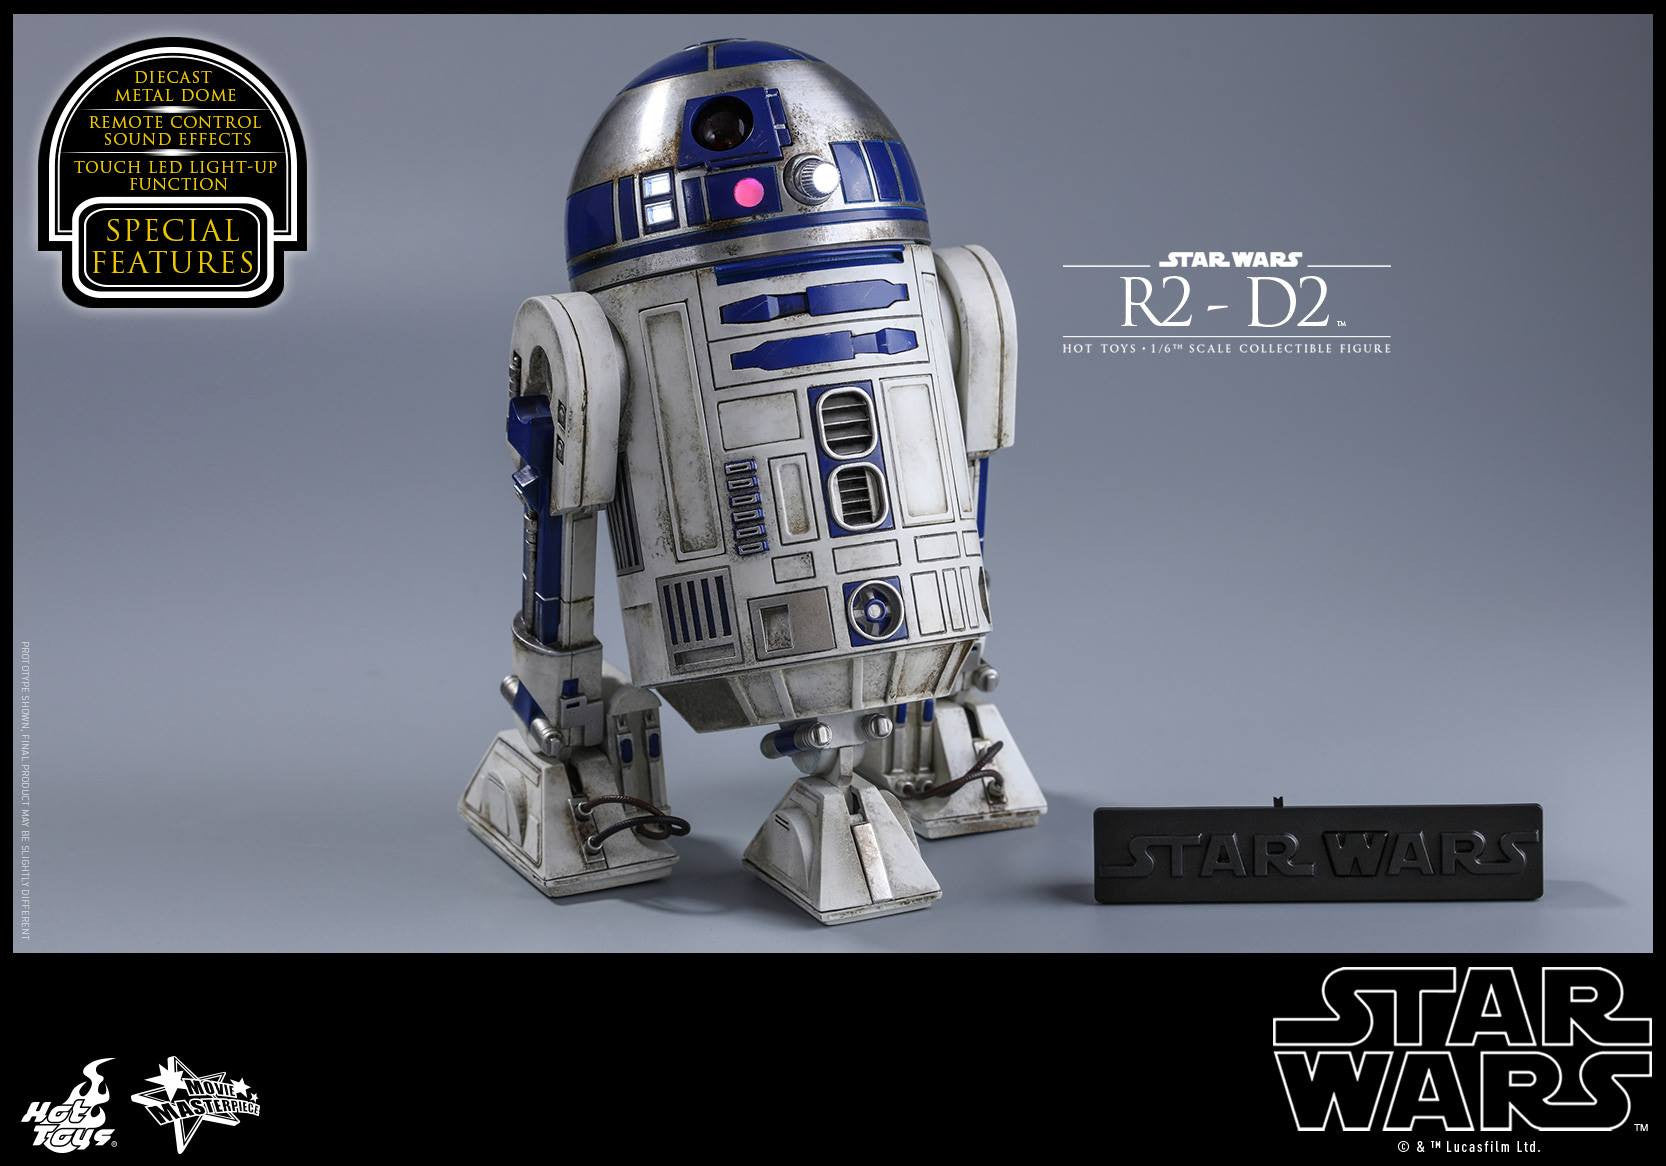 Hot Toys - MMS408 - Star Wars: The Force Awakens - R2-D2 - Marvelous Toys - 13